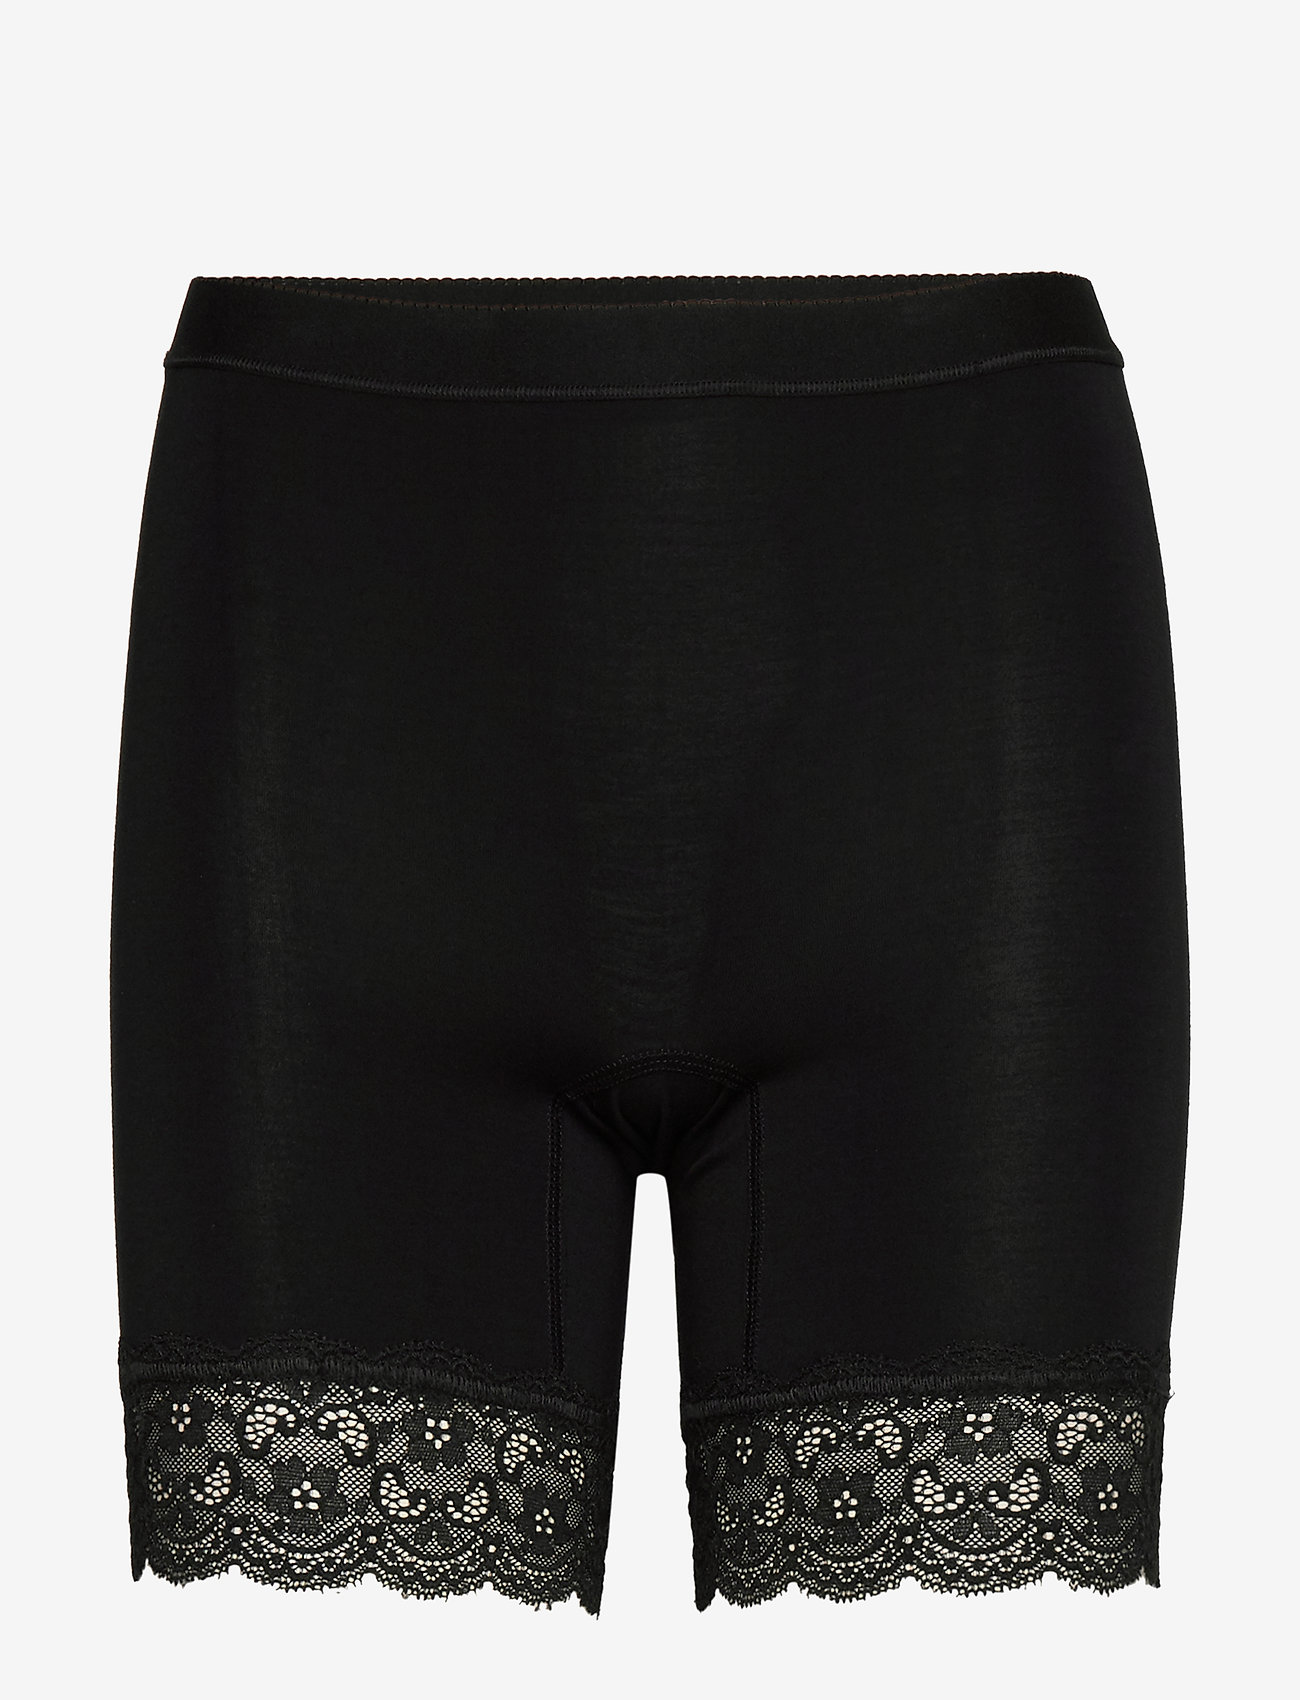 Lady Avenue - Short leggings with lace - bottoms - black - 1